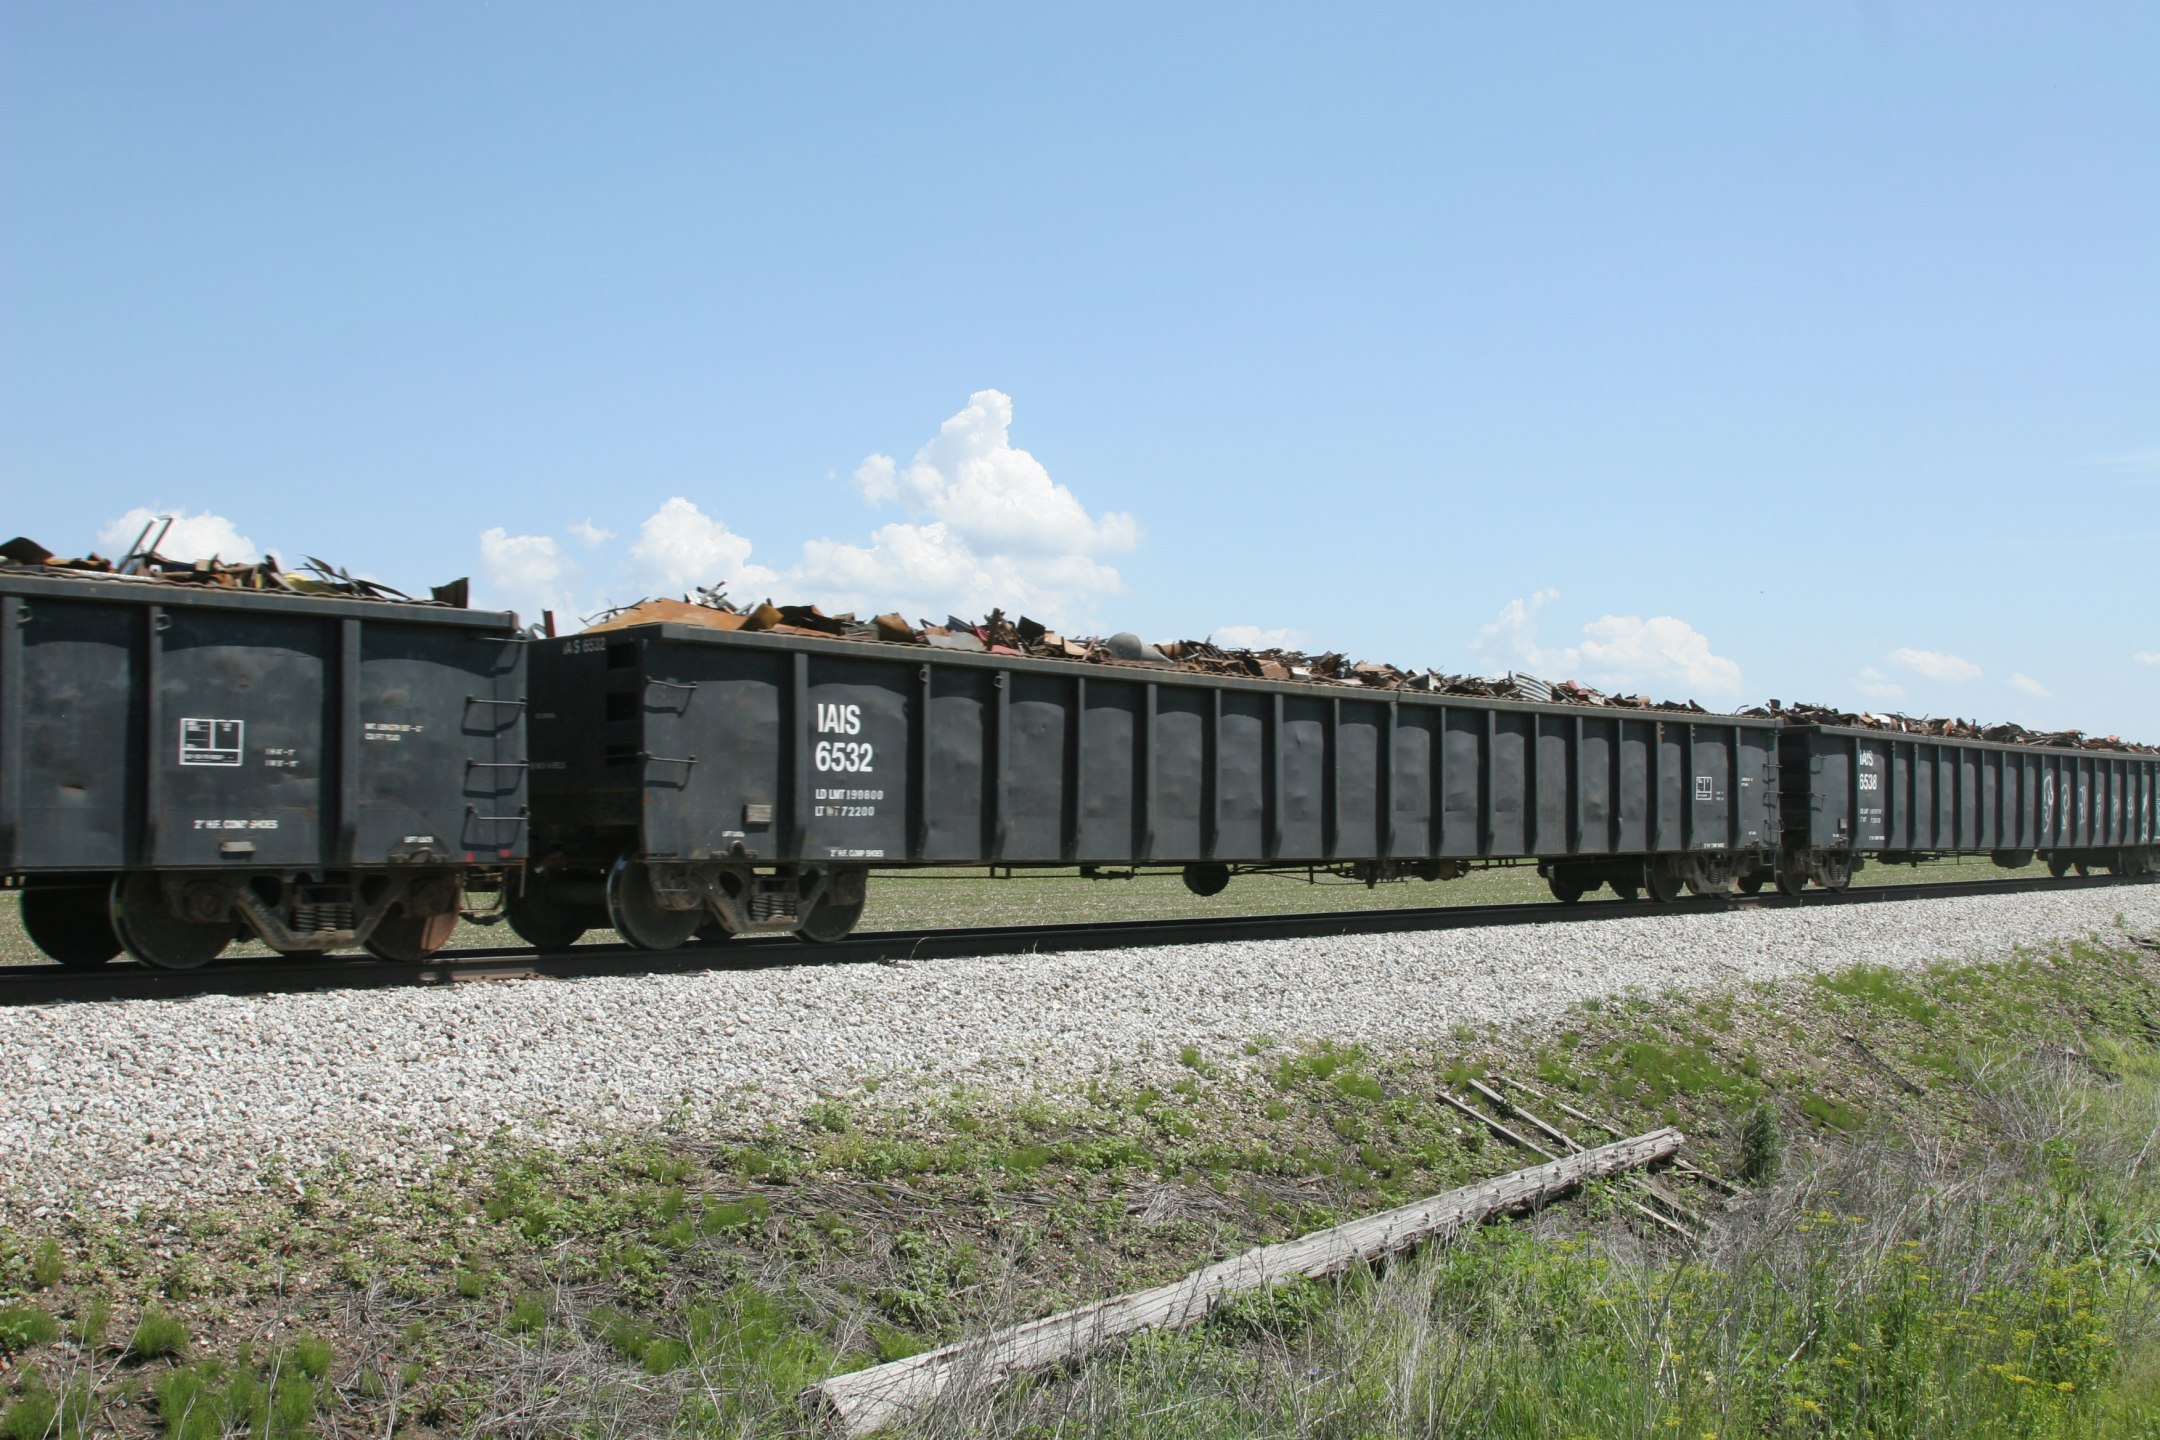 IAIS 6532 near Victor, IA, on 1-Jun-2006